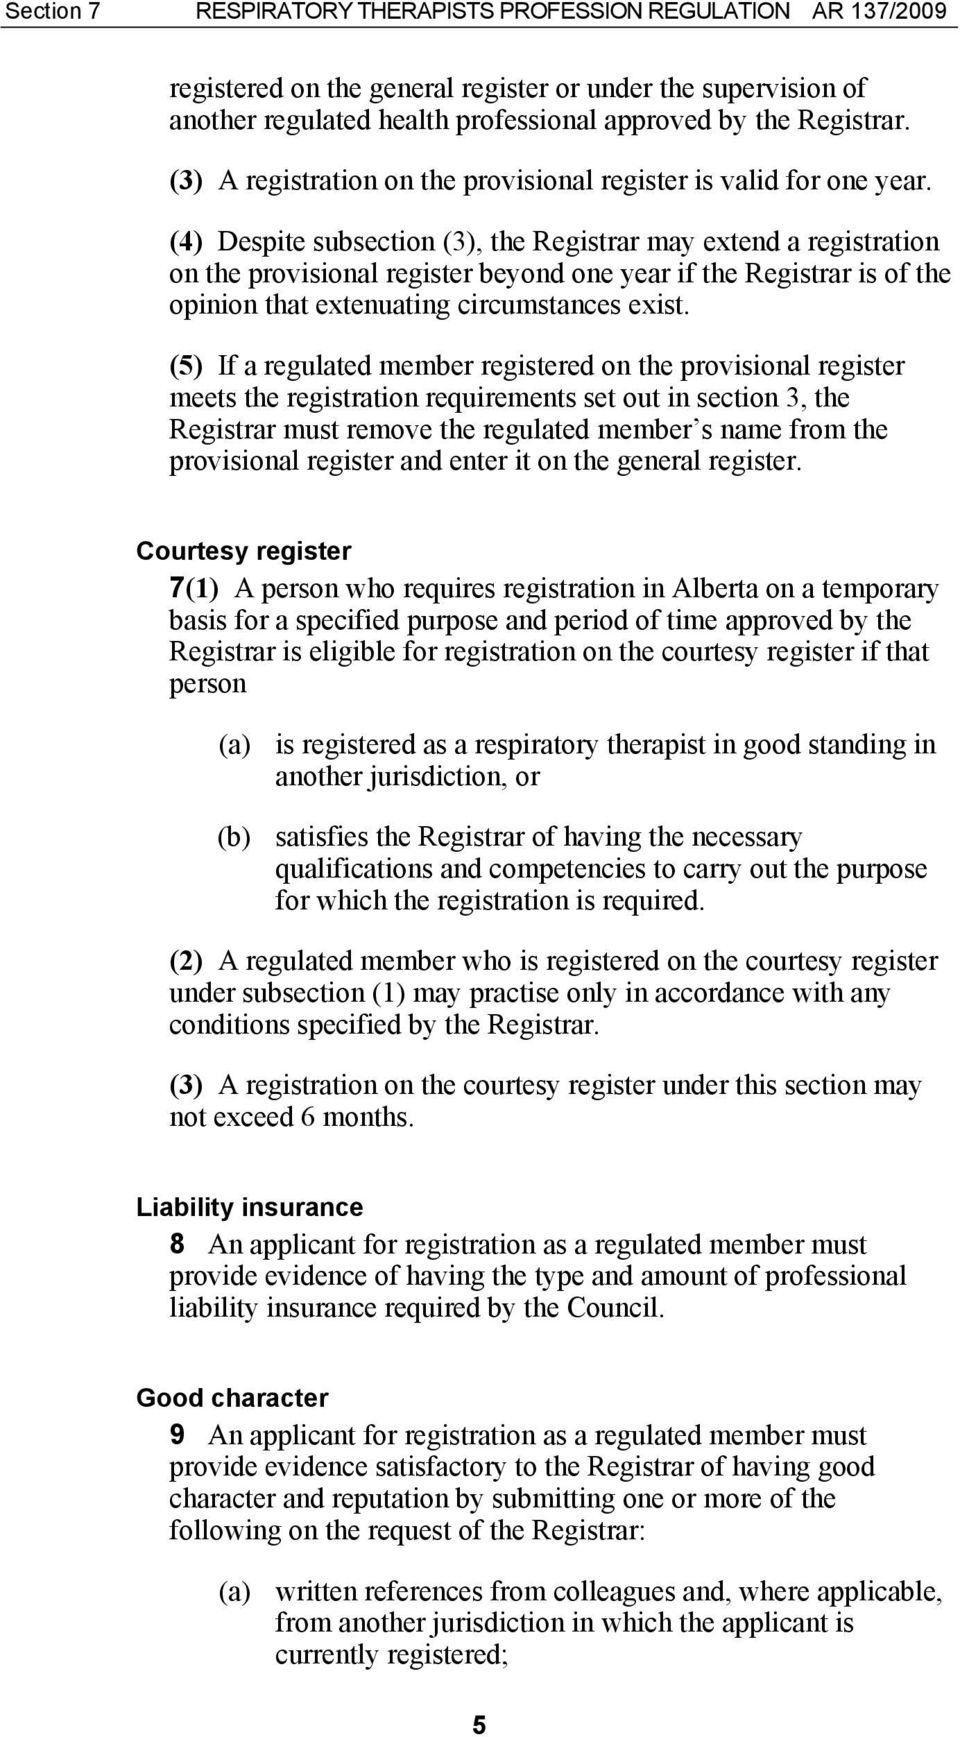 (4) Despite subsection (3), the Registrar may extend a registration on the provisional register beyond one year if the Registrar is of the opinion that extenuating circumstances exist.